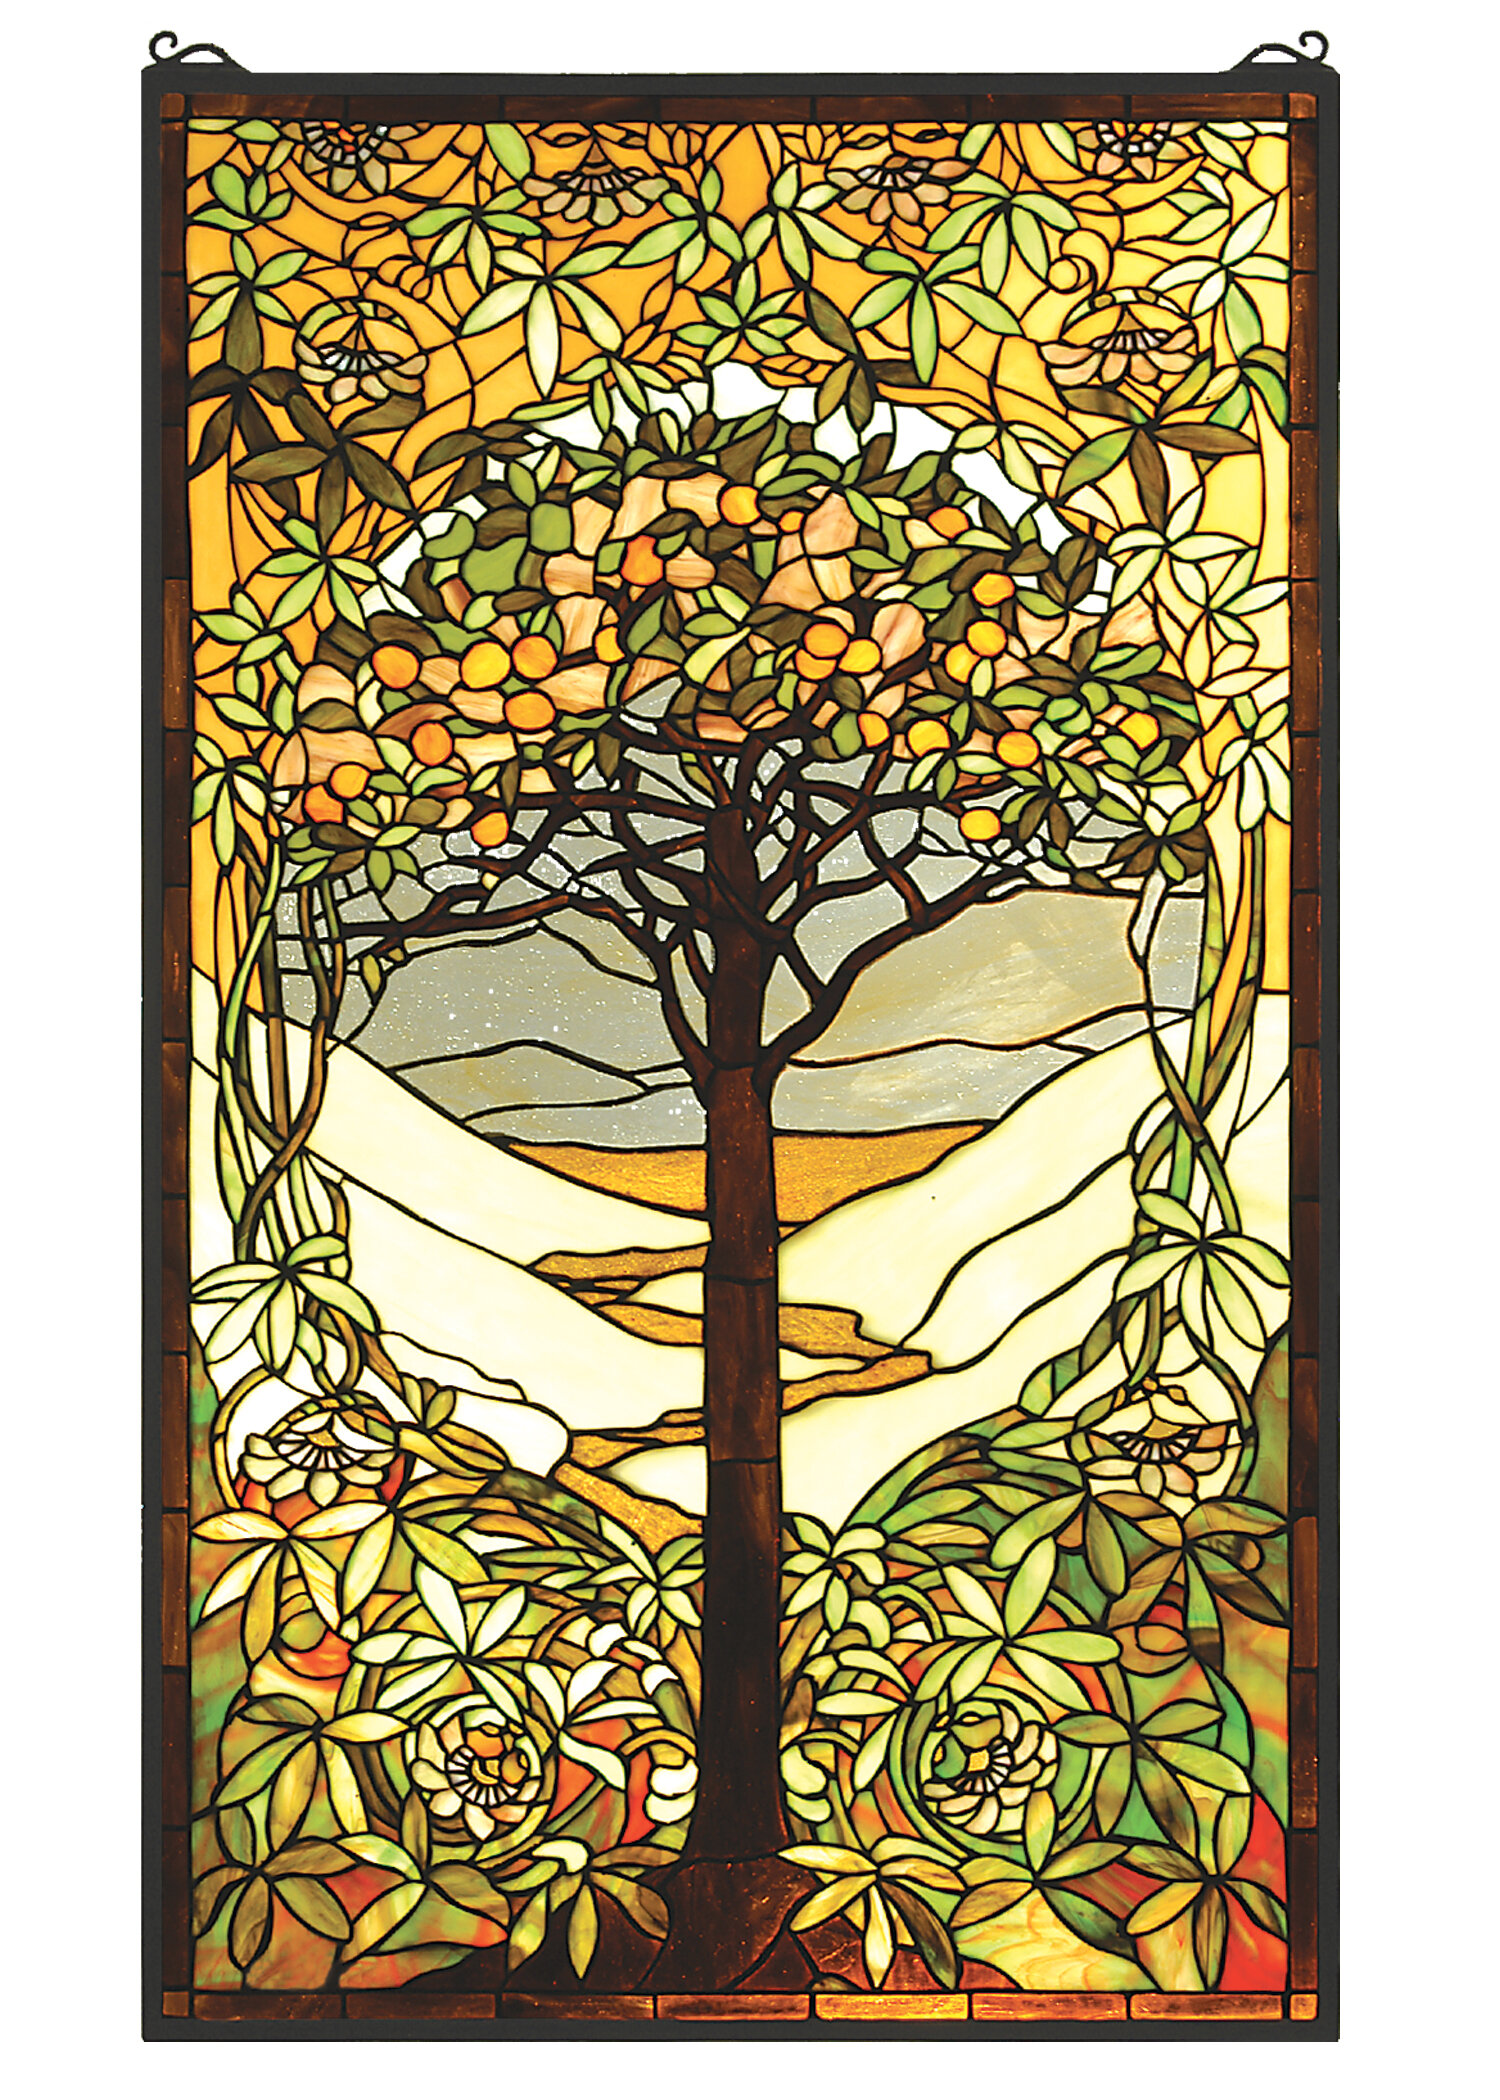 Meyda Tiffany Tiffany Tree of Life Stained Glass Window | Wayfair